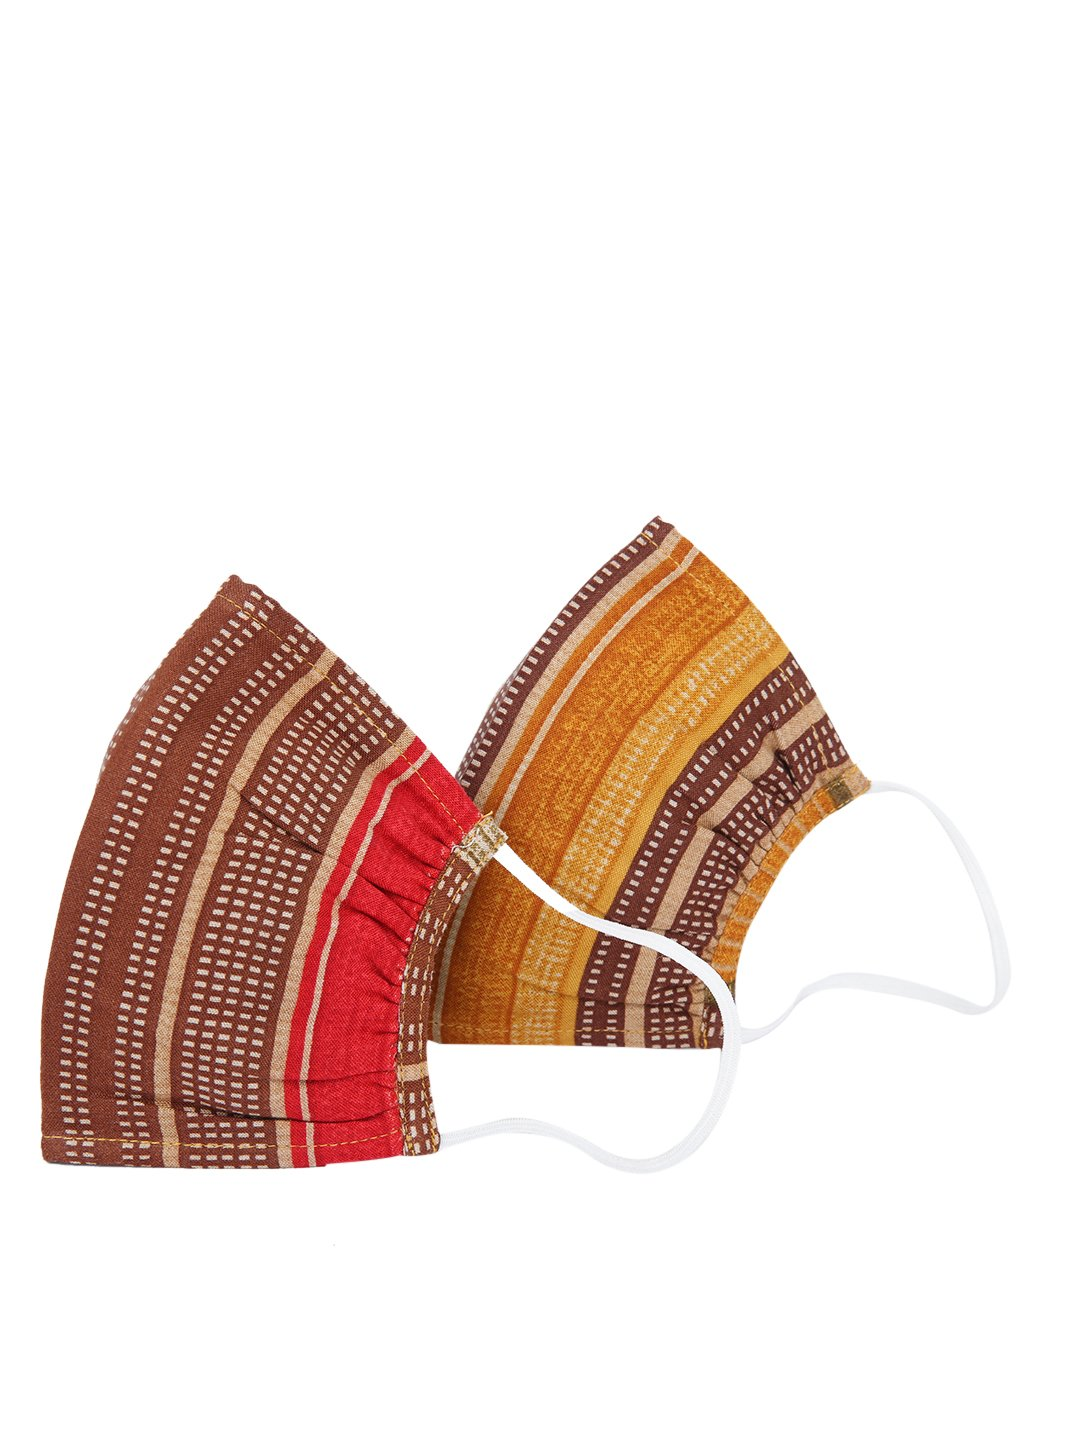 Fabnest   Fabnest Unisex Rayon 3 Ply Red/Brown Multi Printed Comfortable Face Masks (Pack Of 2)